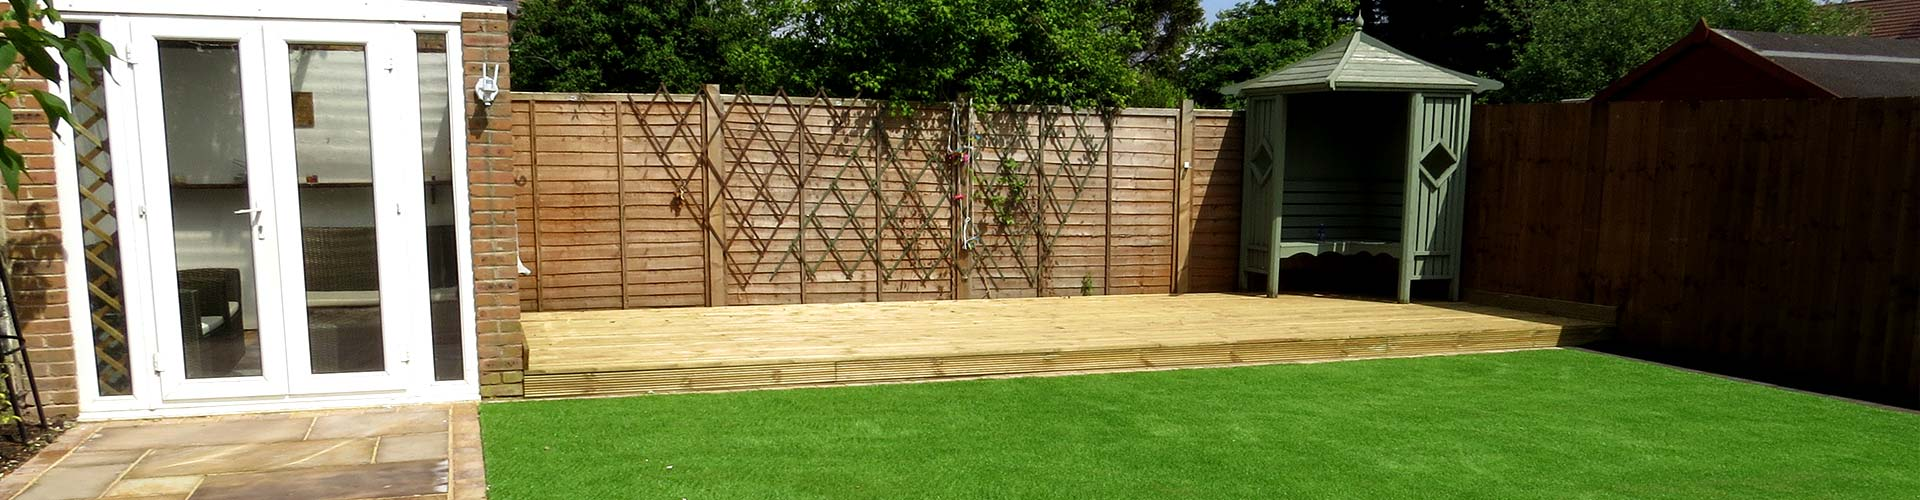 Fencing Decking Stockton on Tees